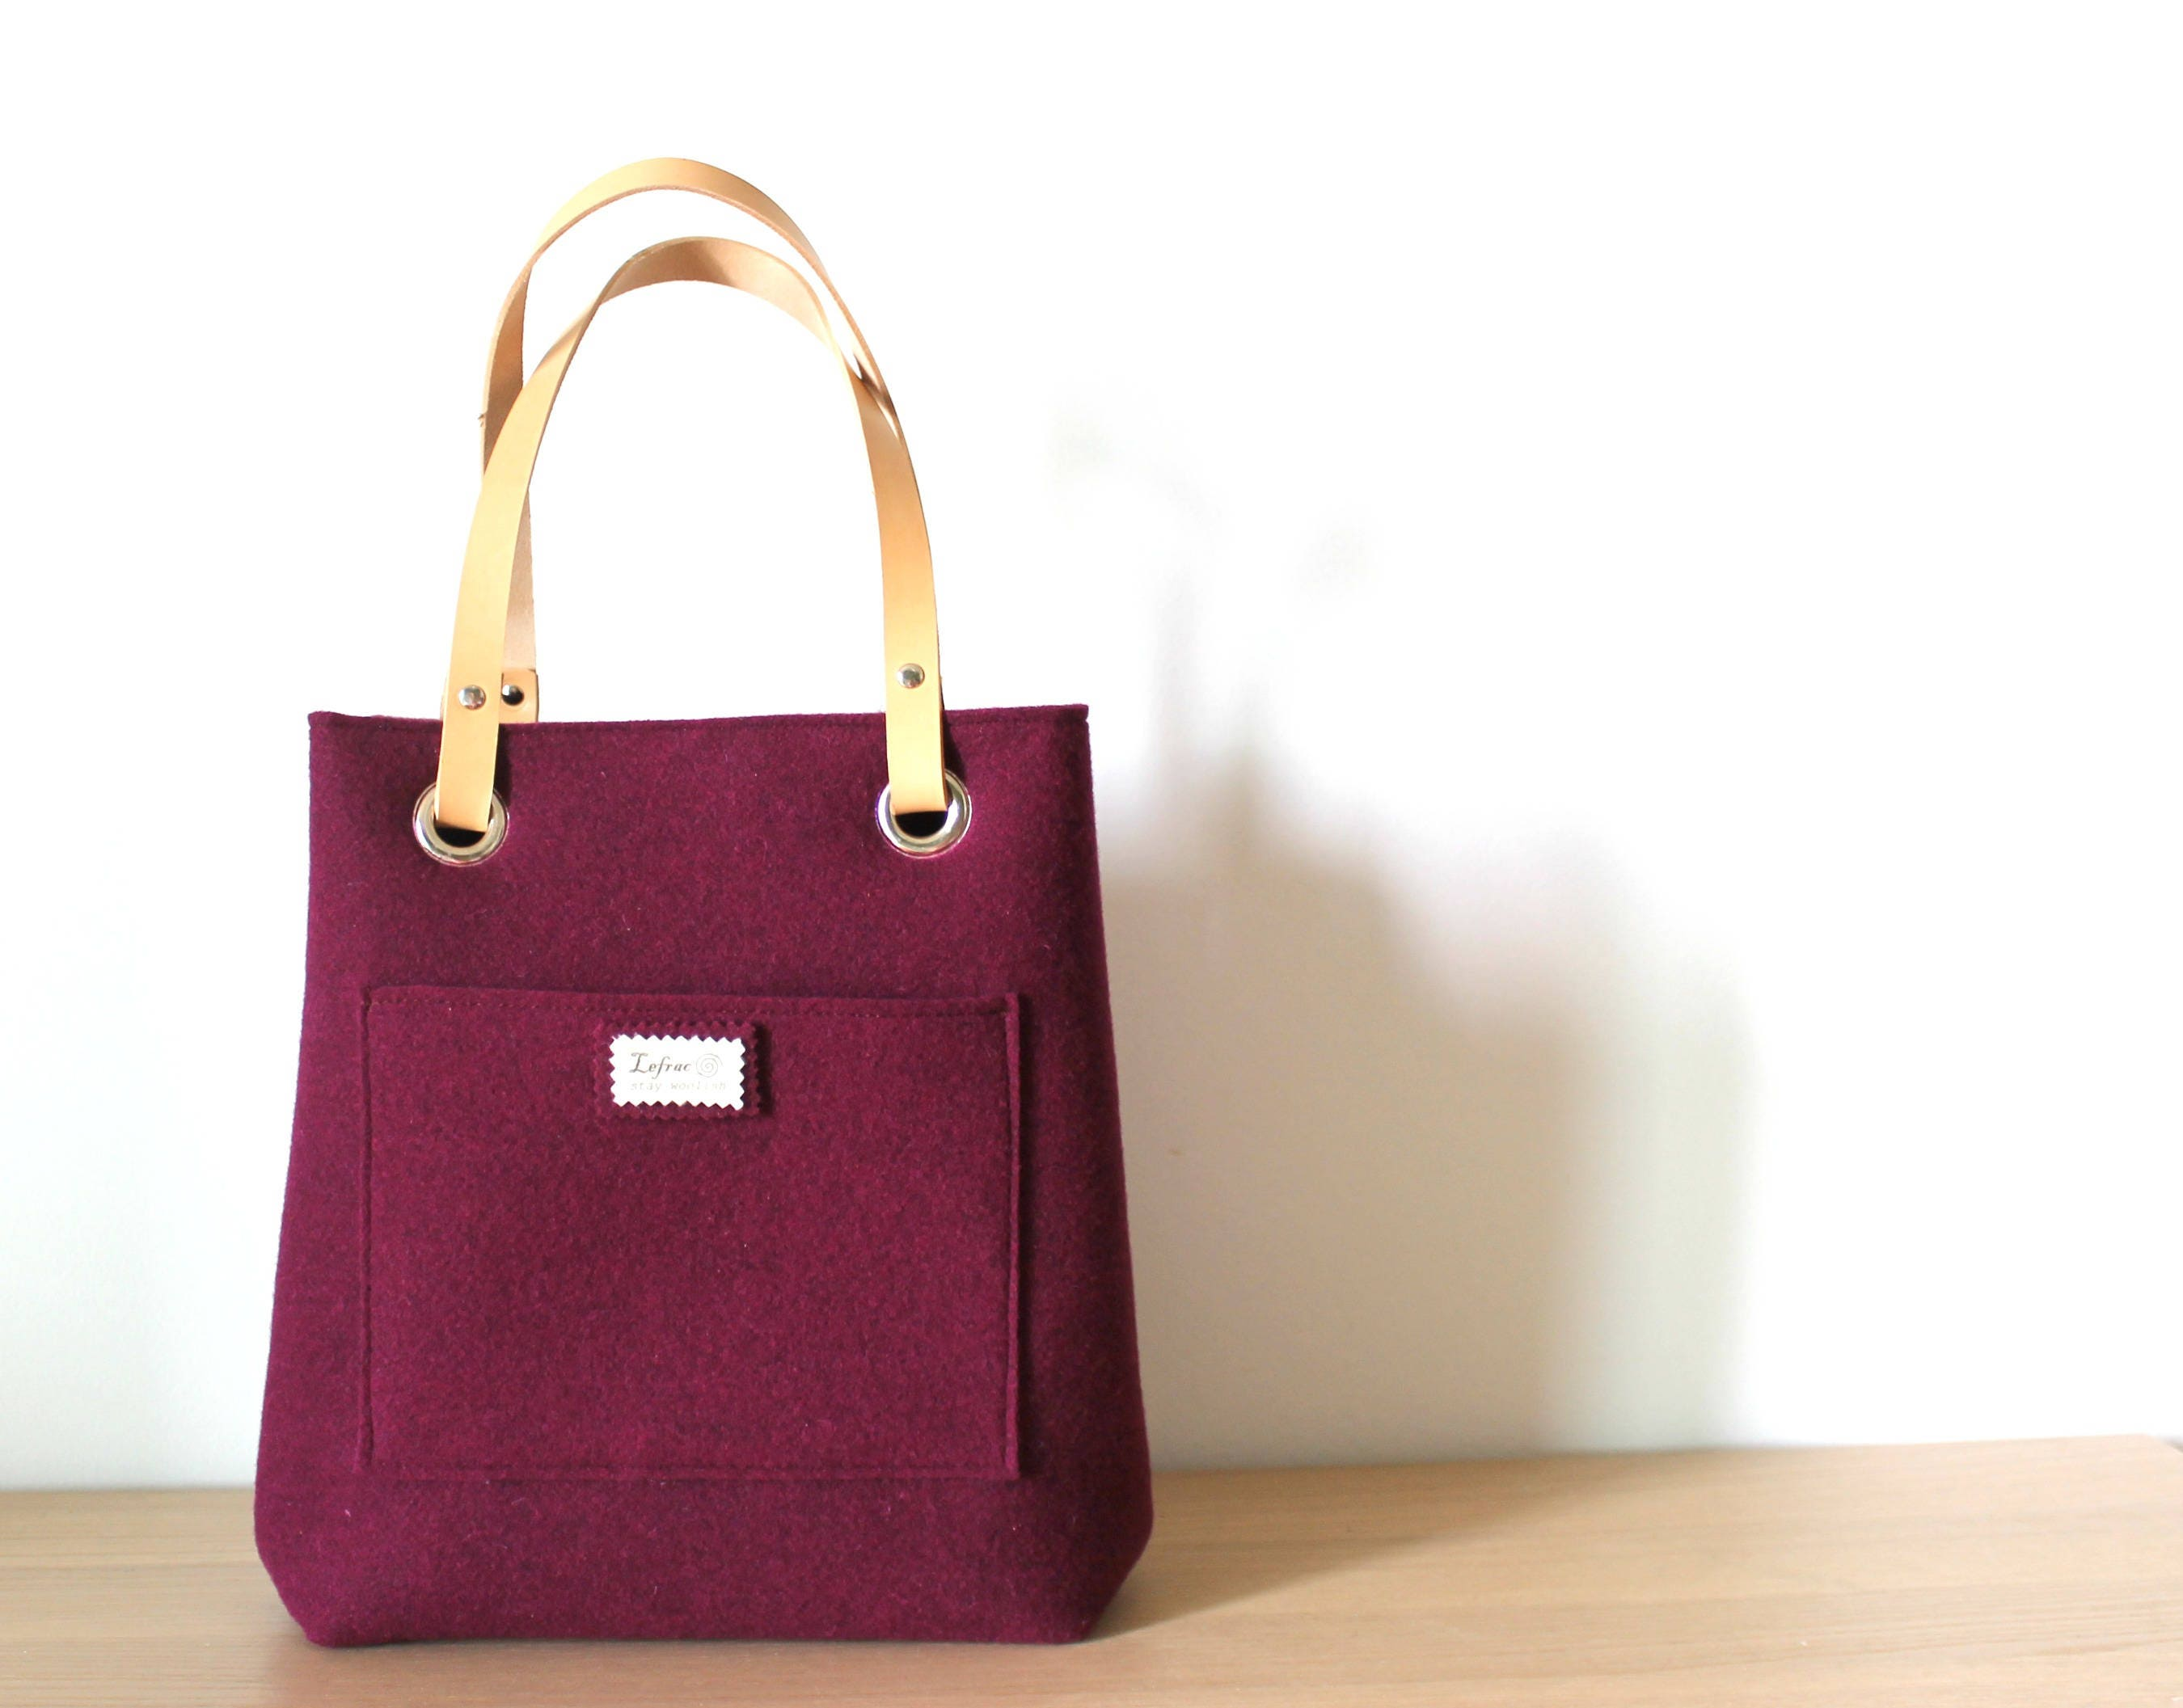 Medium Leather tote bag Felt Tote Leather handles tote  a0214cd9ade47